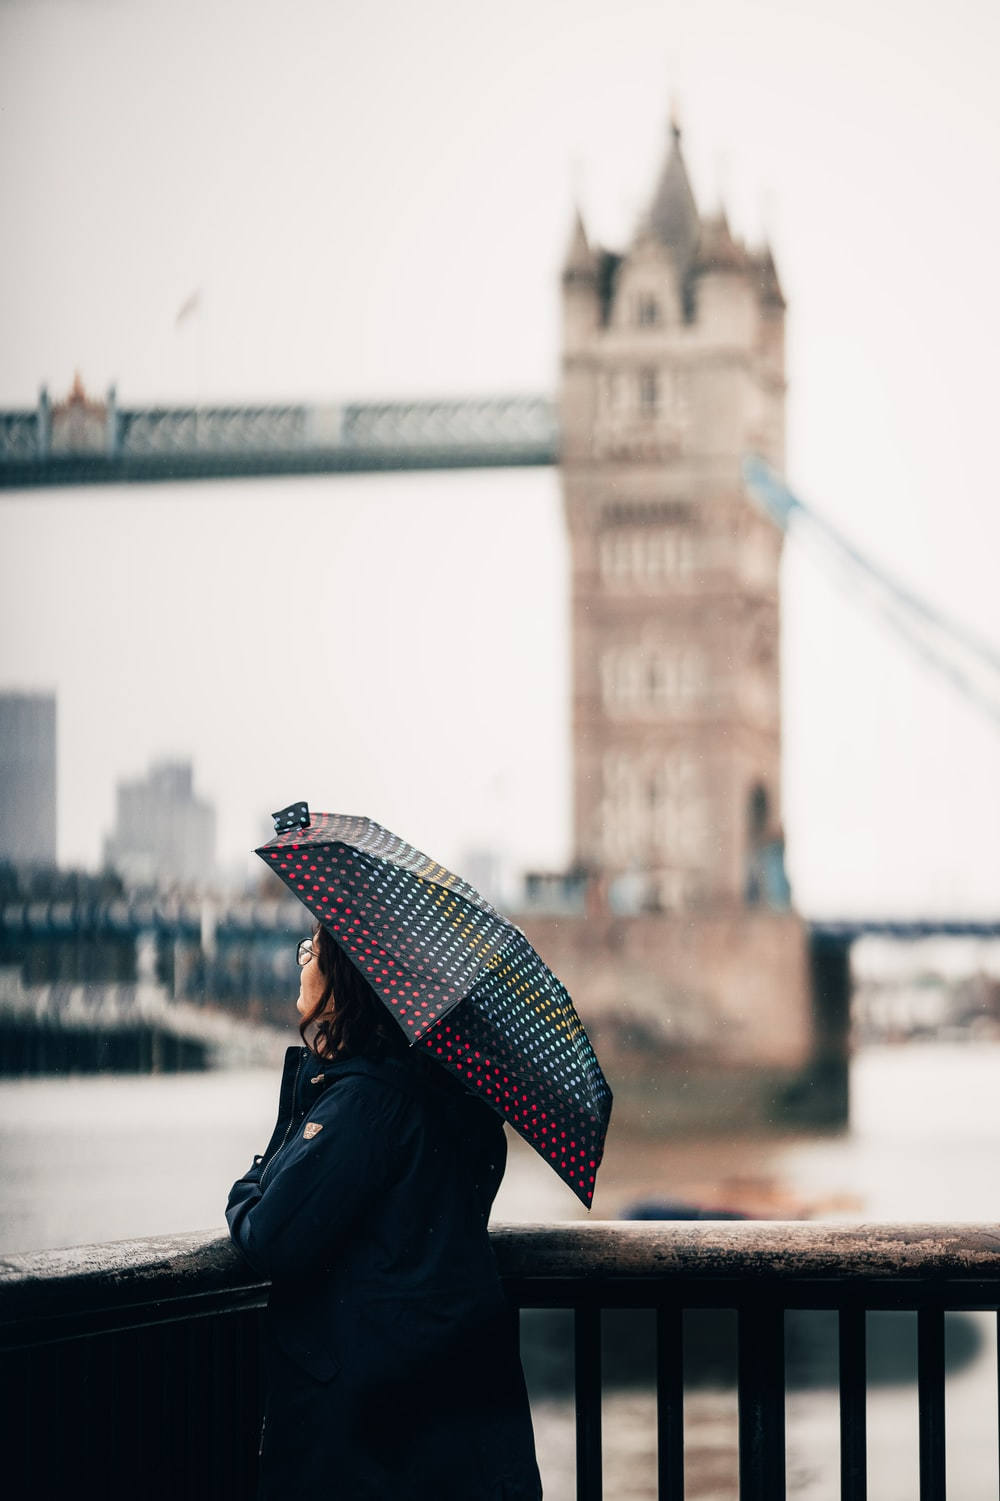 woman in black jacket holding red and white umbrella